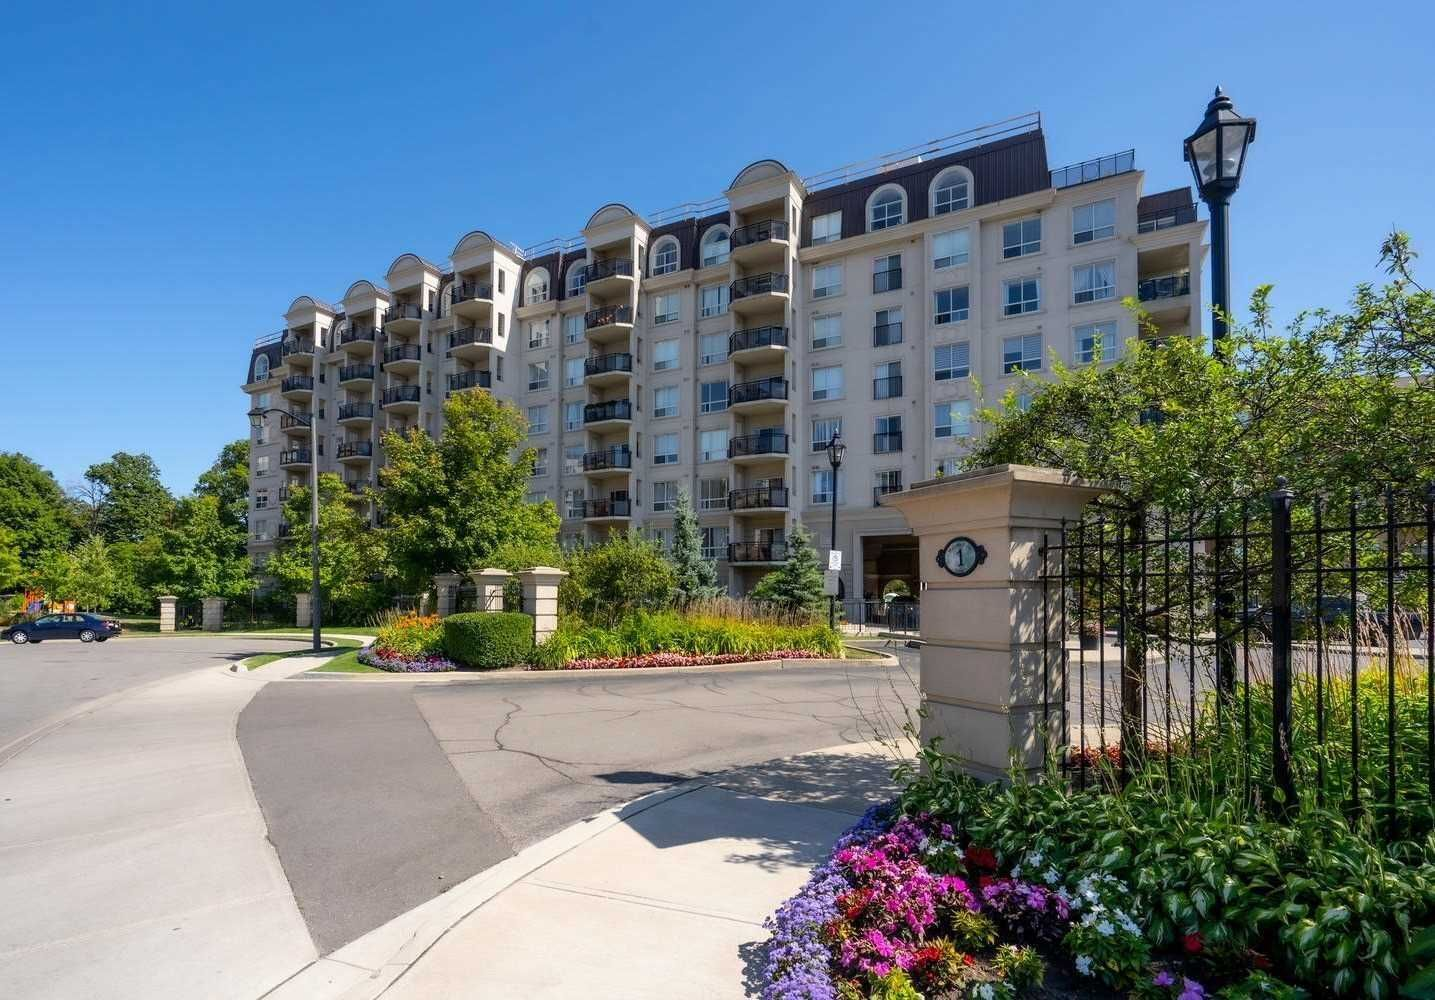 Main Photo: 102 1 Maison Parc Court in Vaughan: Lakeview Estates Condo for sale : MLS®# N5241995